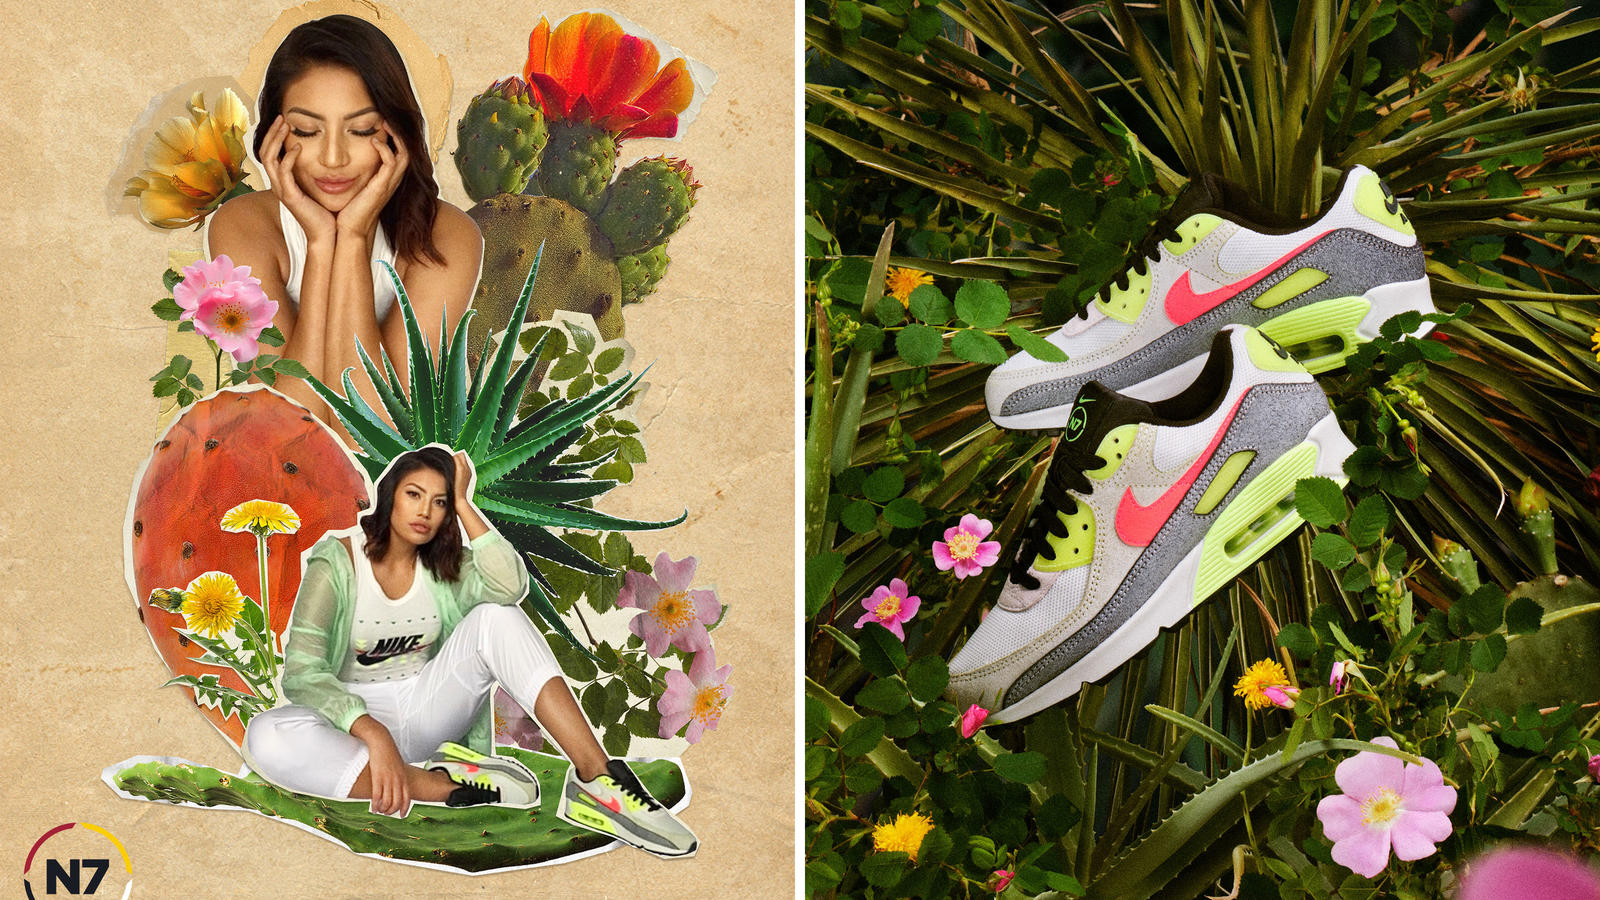 nike-n7-summer-2020-footwear-and-apparel-official-images-and-release-date